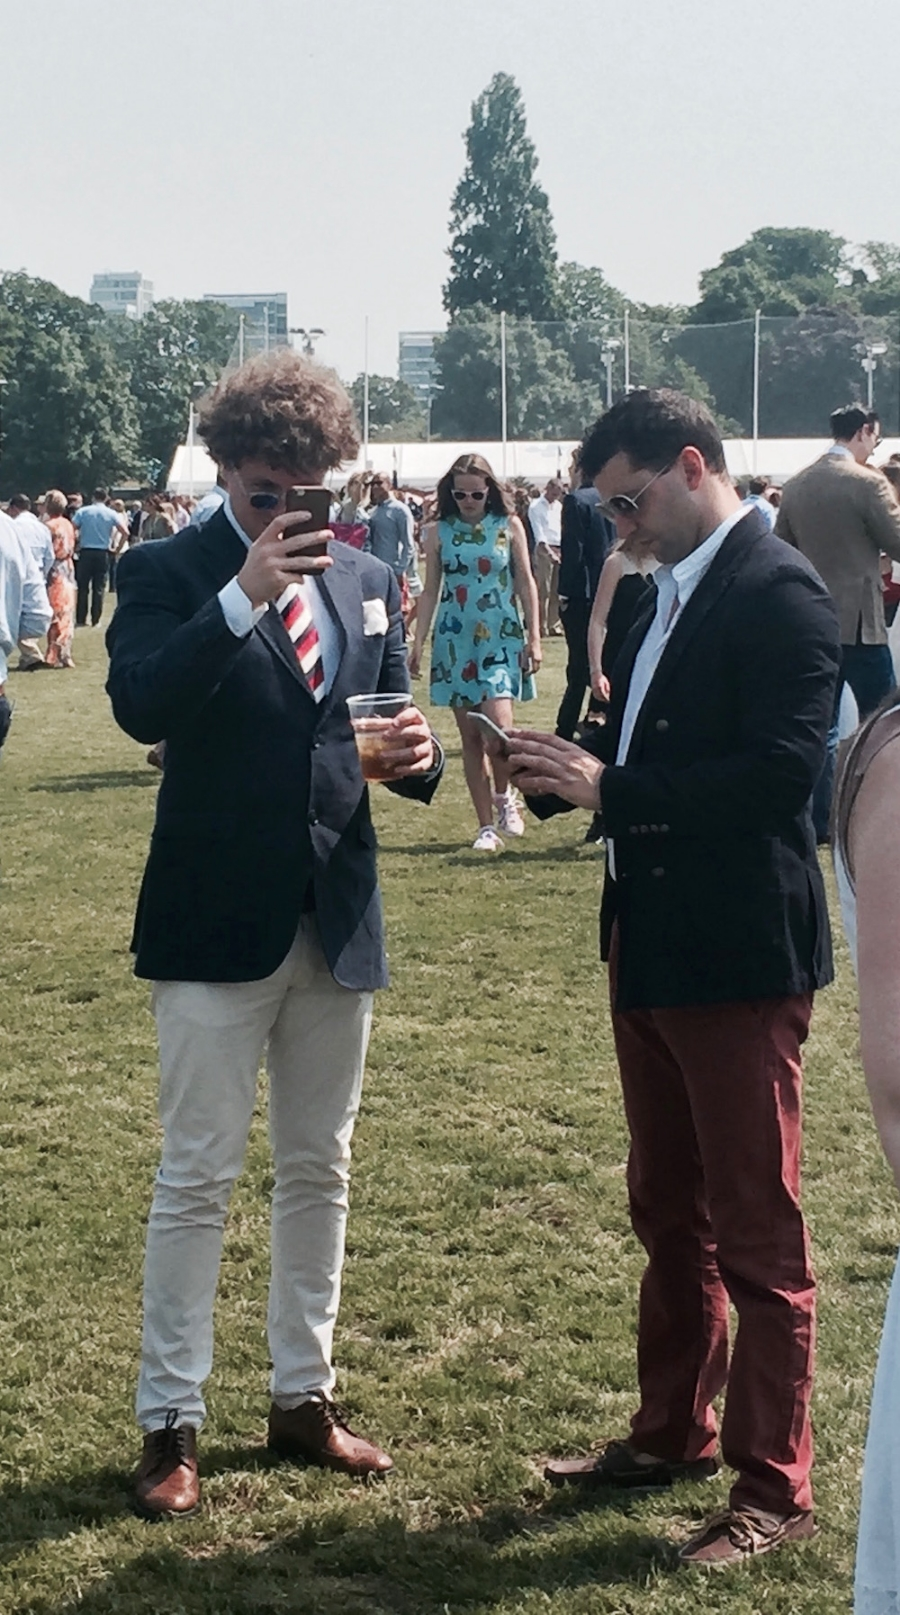 Stylish men at Polo, London